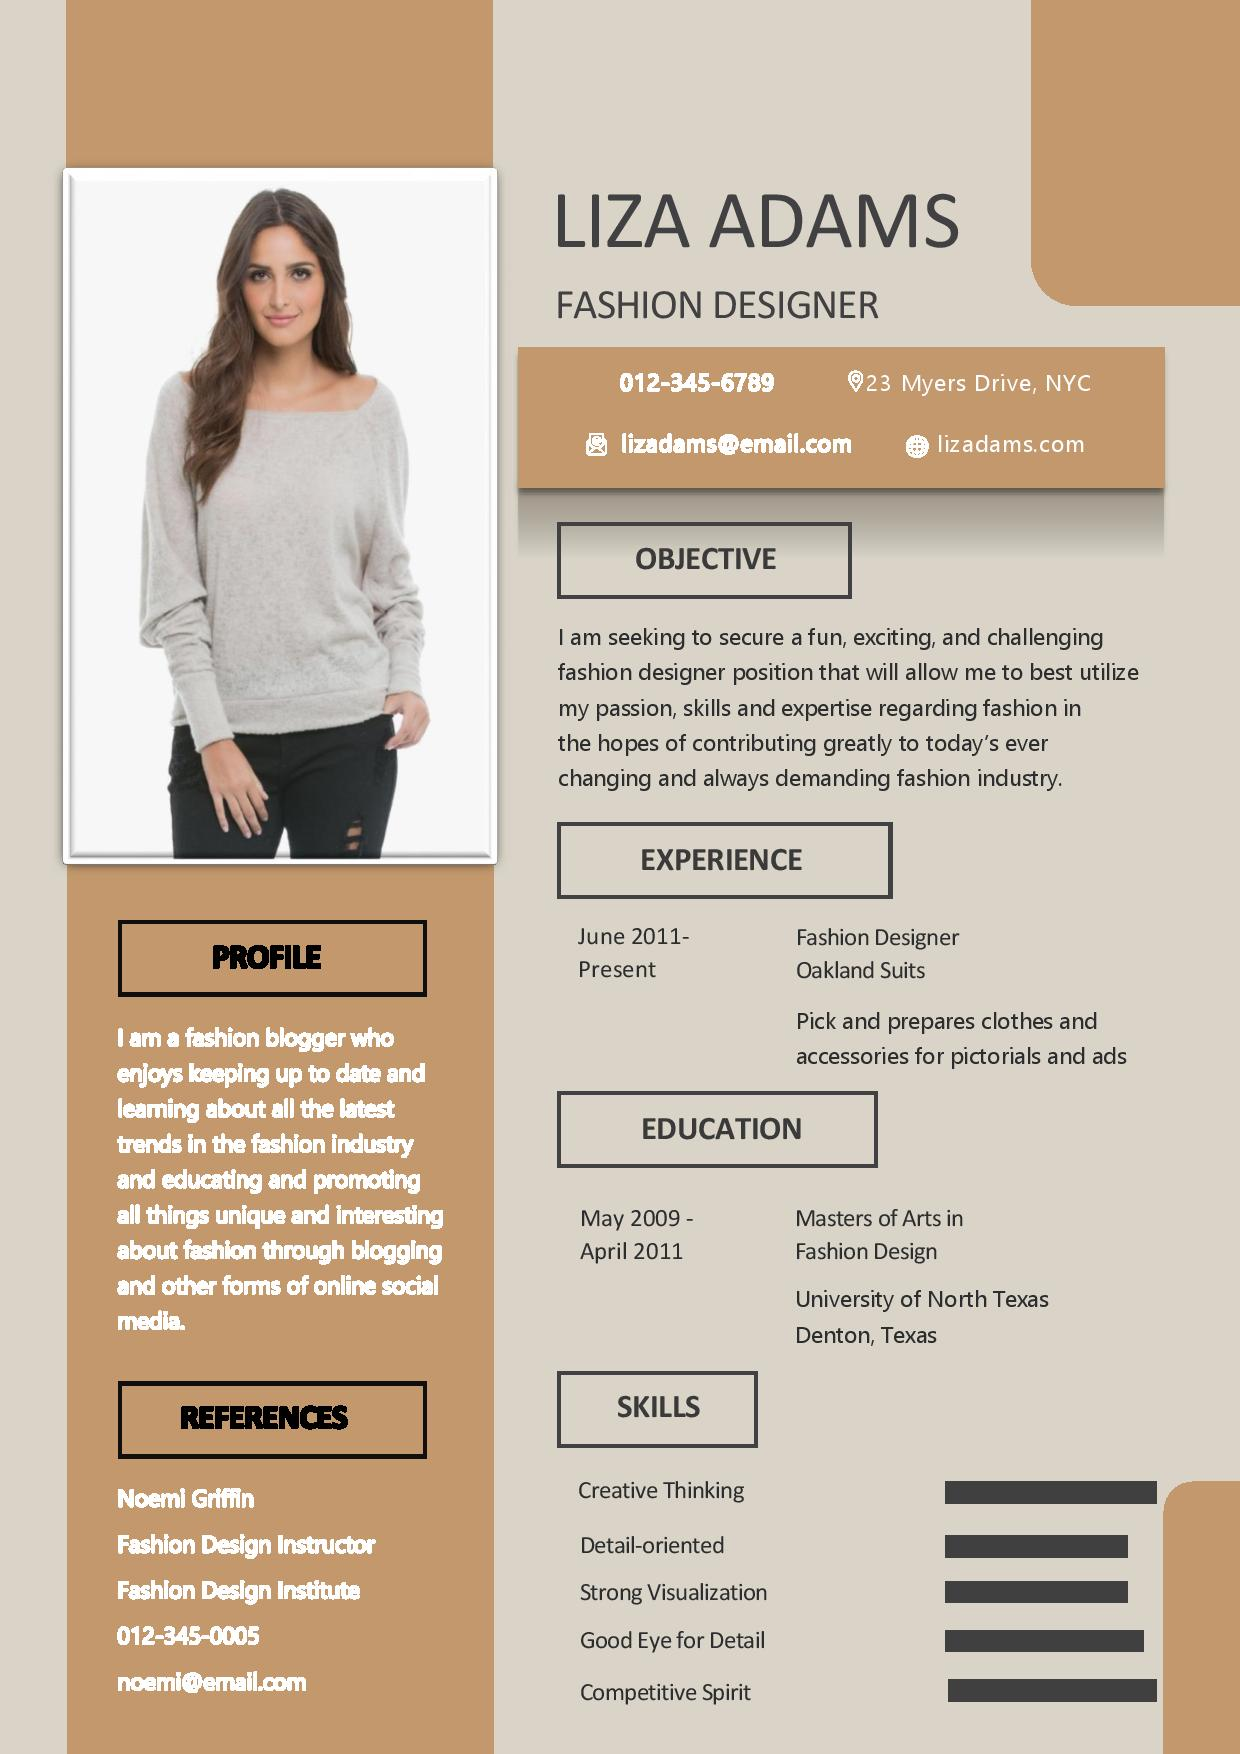 fashion designer resume dream creative for customer service experience best professional Resume Creative Resume For Fashion Designer